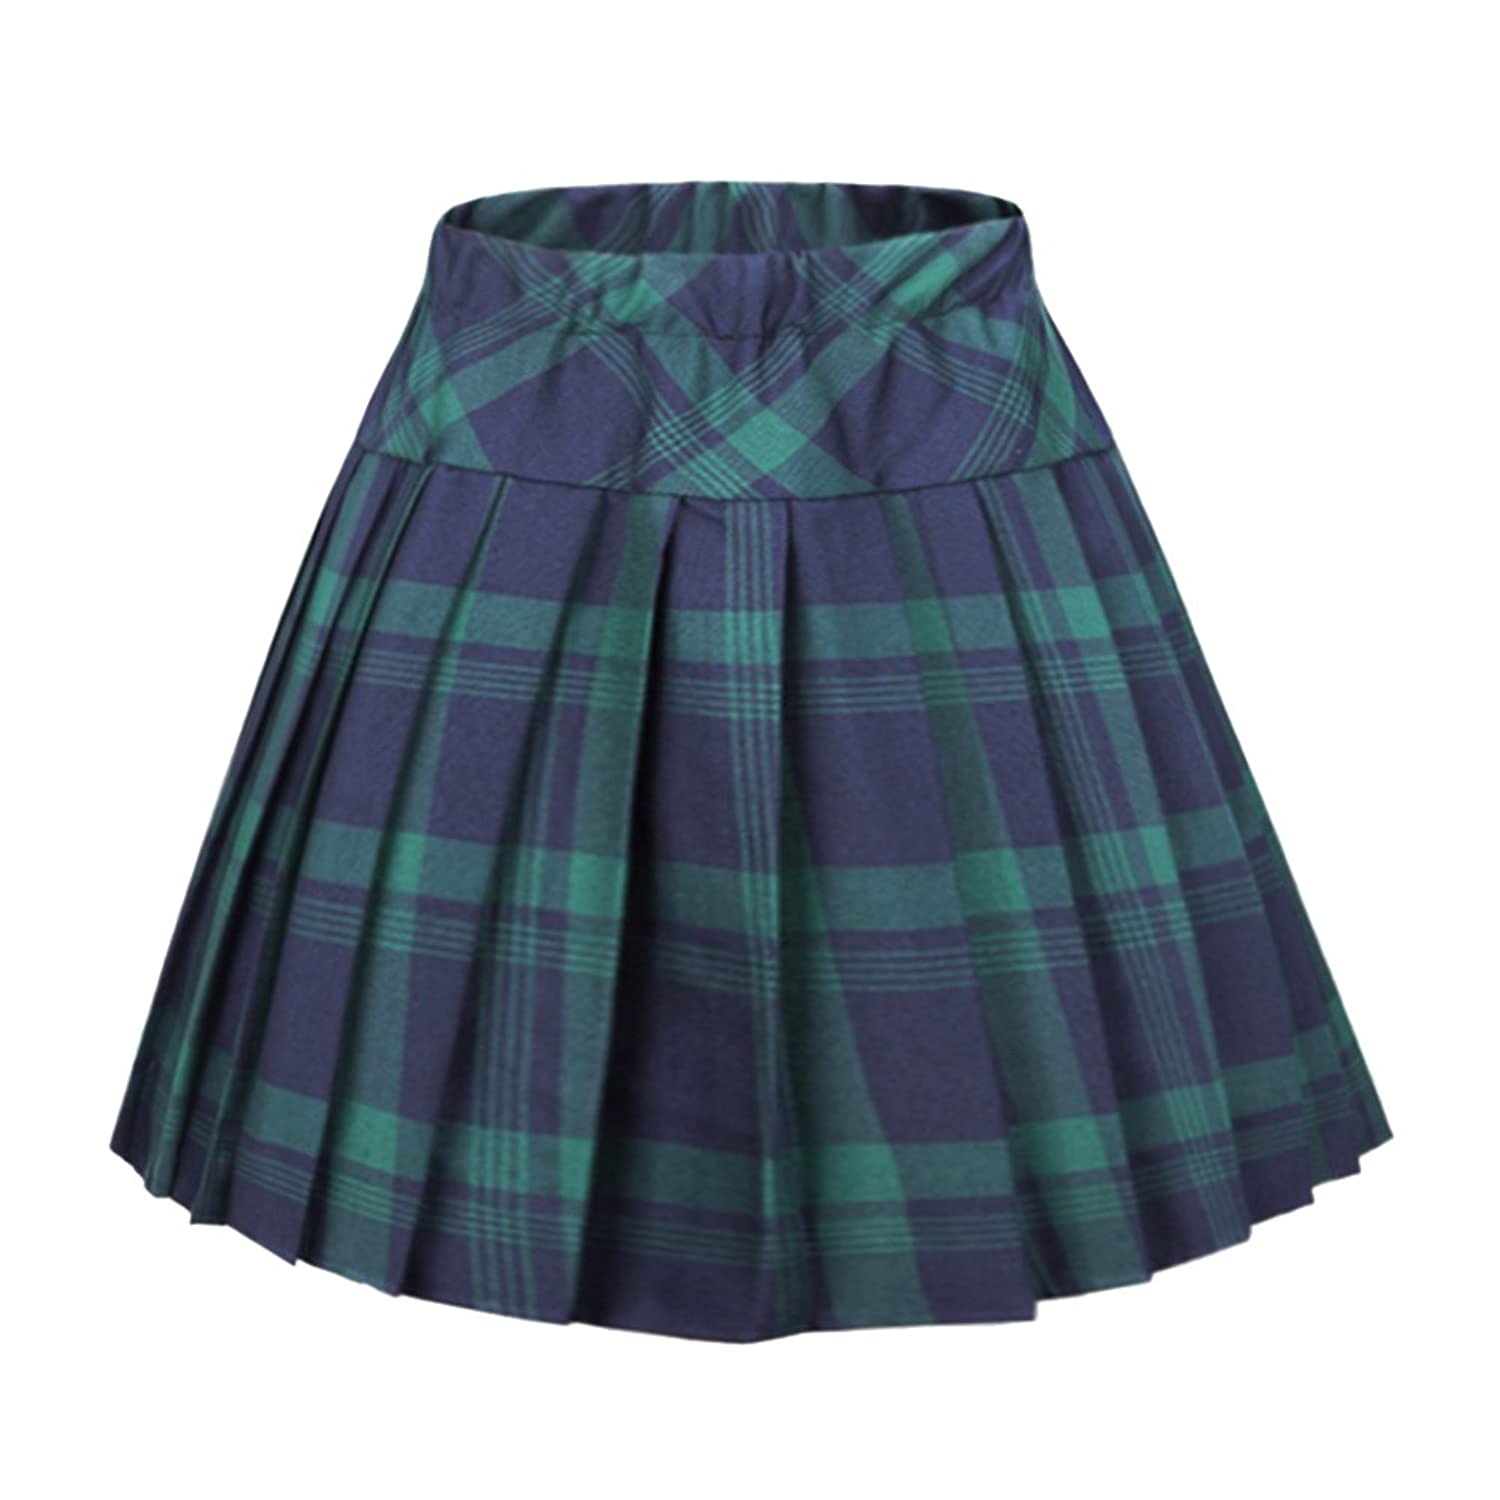 Retro Skirts: Vintage, Pencil, Circle, & Plus Sizes Urban CoCo Womens Elastic Waist Tartan Pleated School Skirt $14.86 AT vintagedancer.com